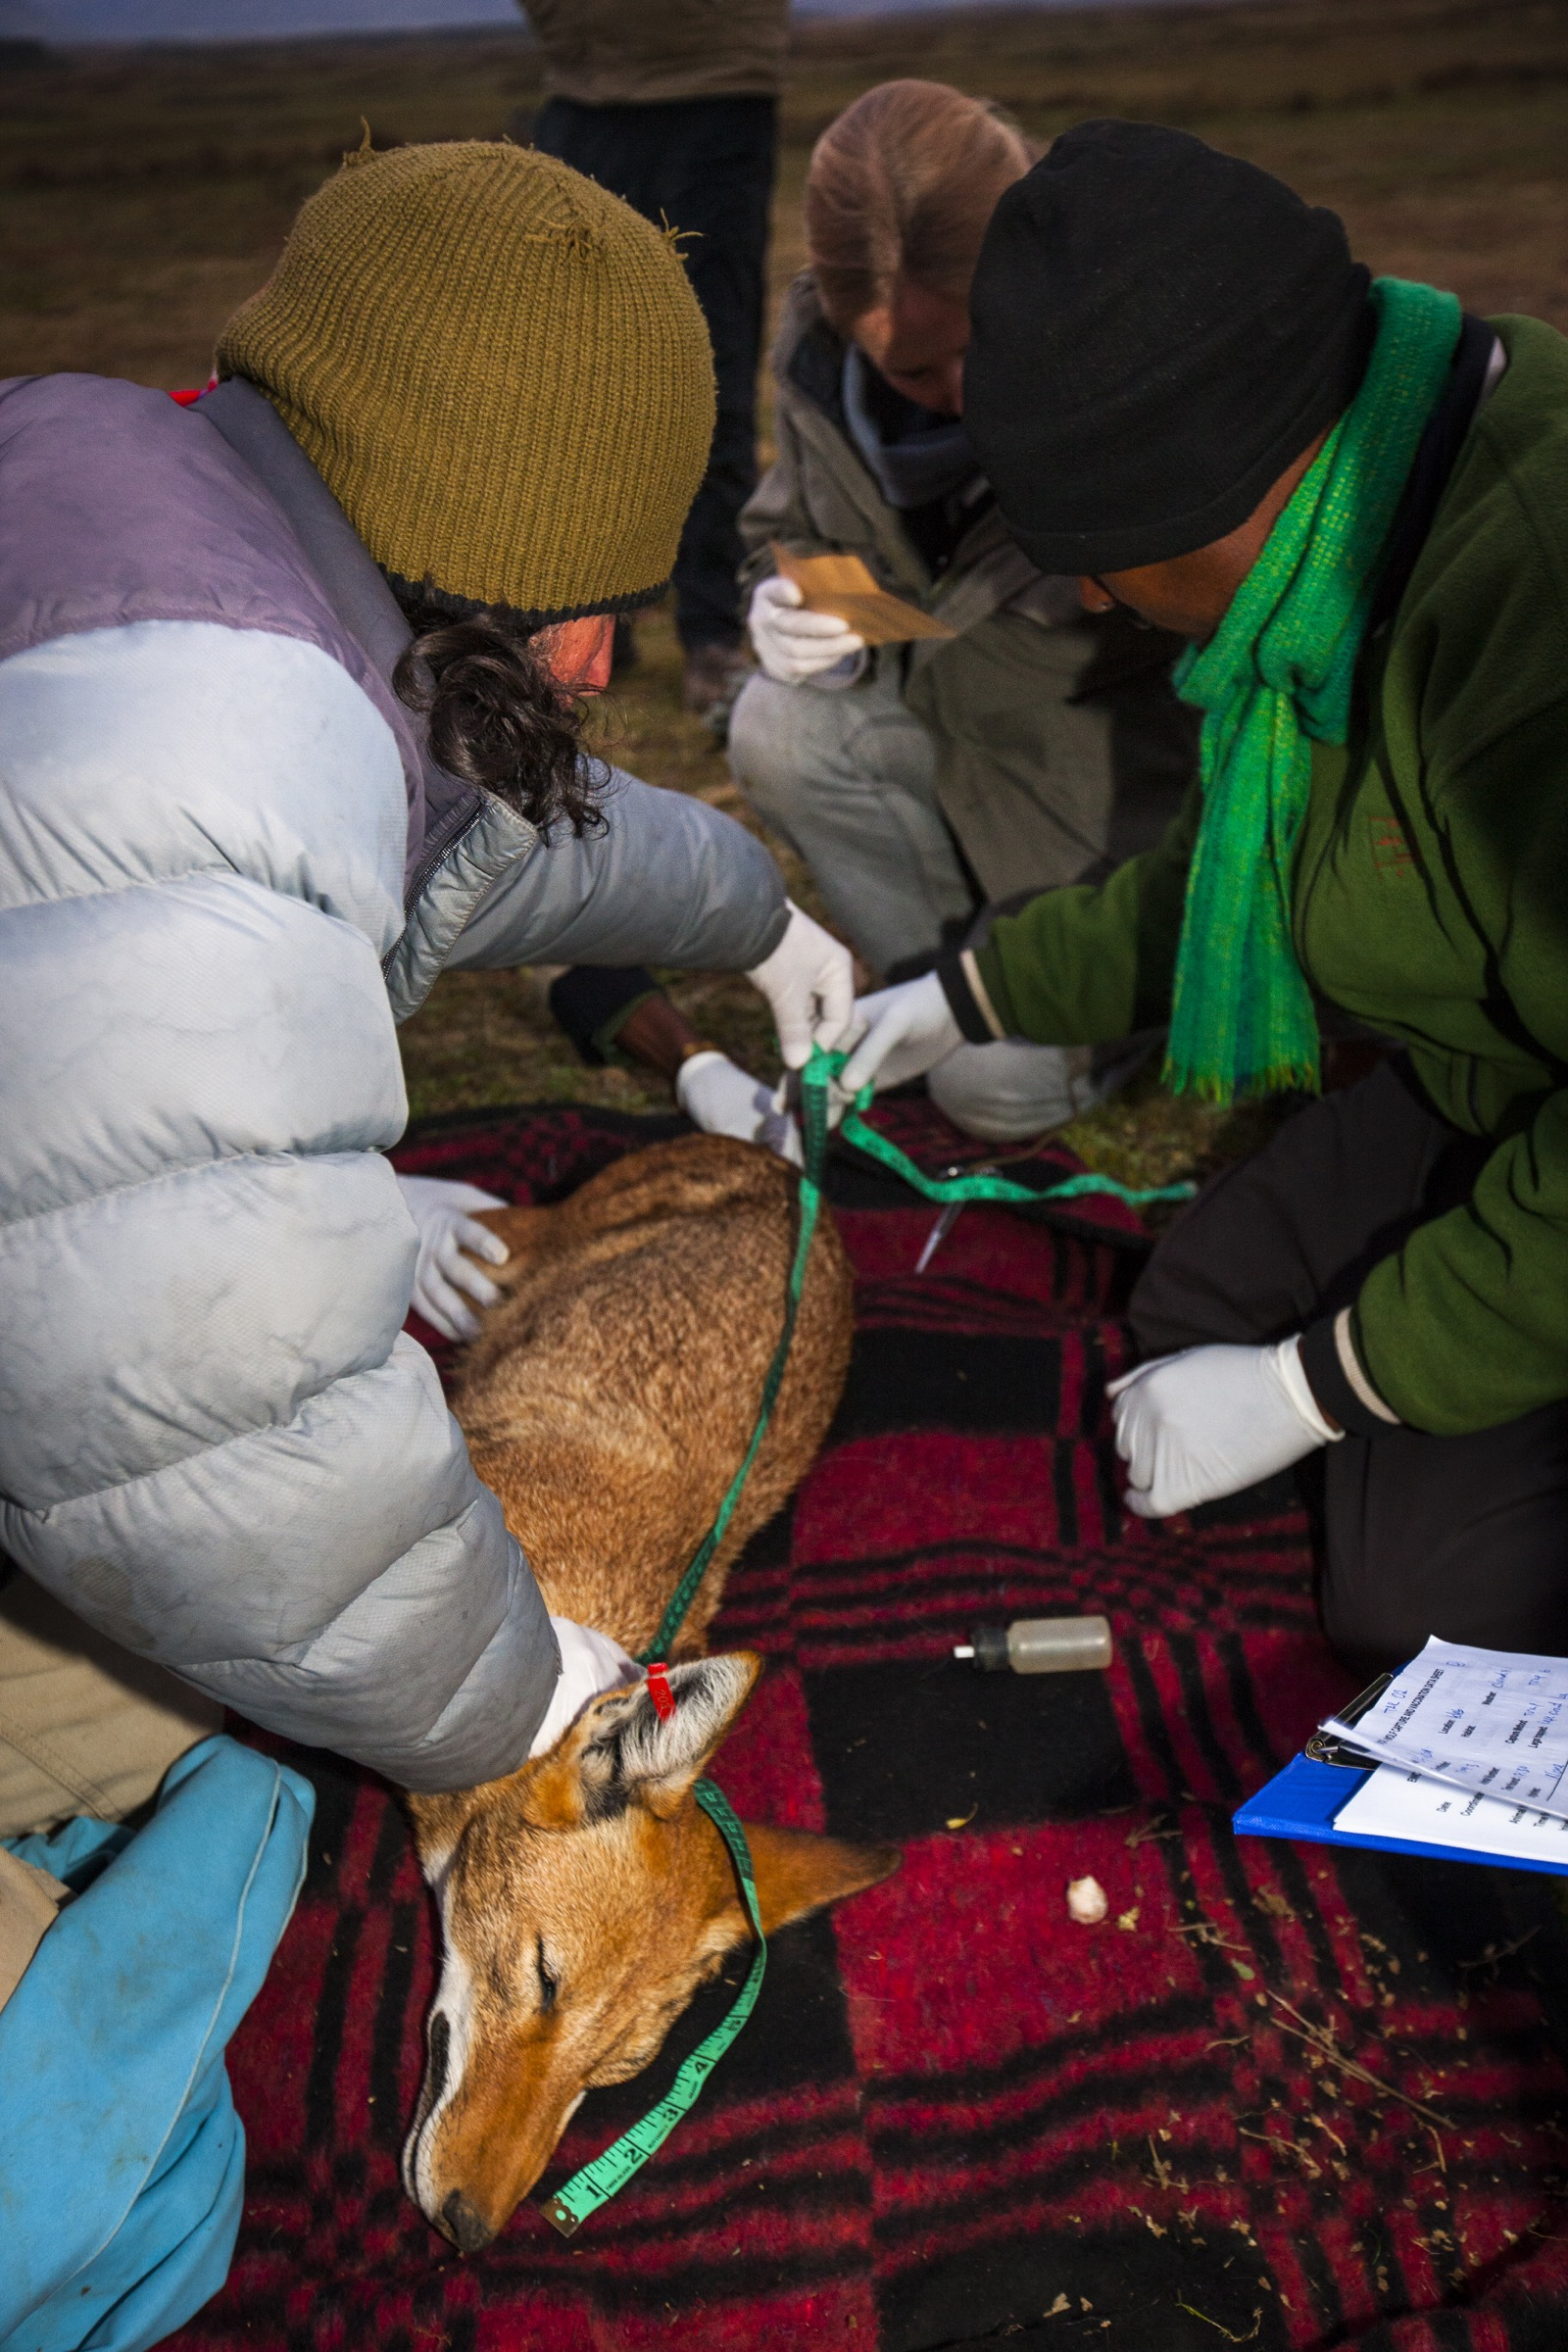 Researchers from the Ethiopian Wolf Conservation Program work quickly to collect measurements and blood samples from a sedated wolf before its release.